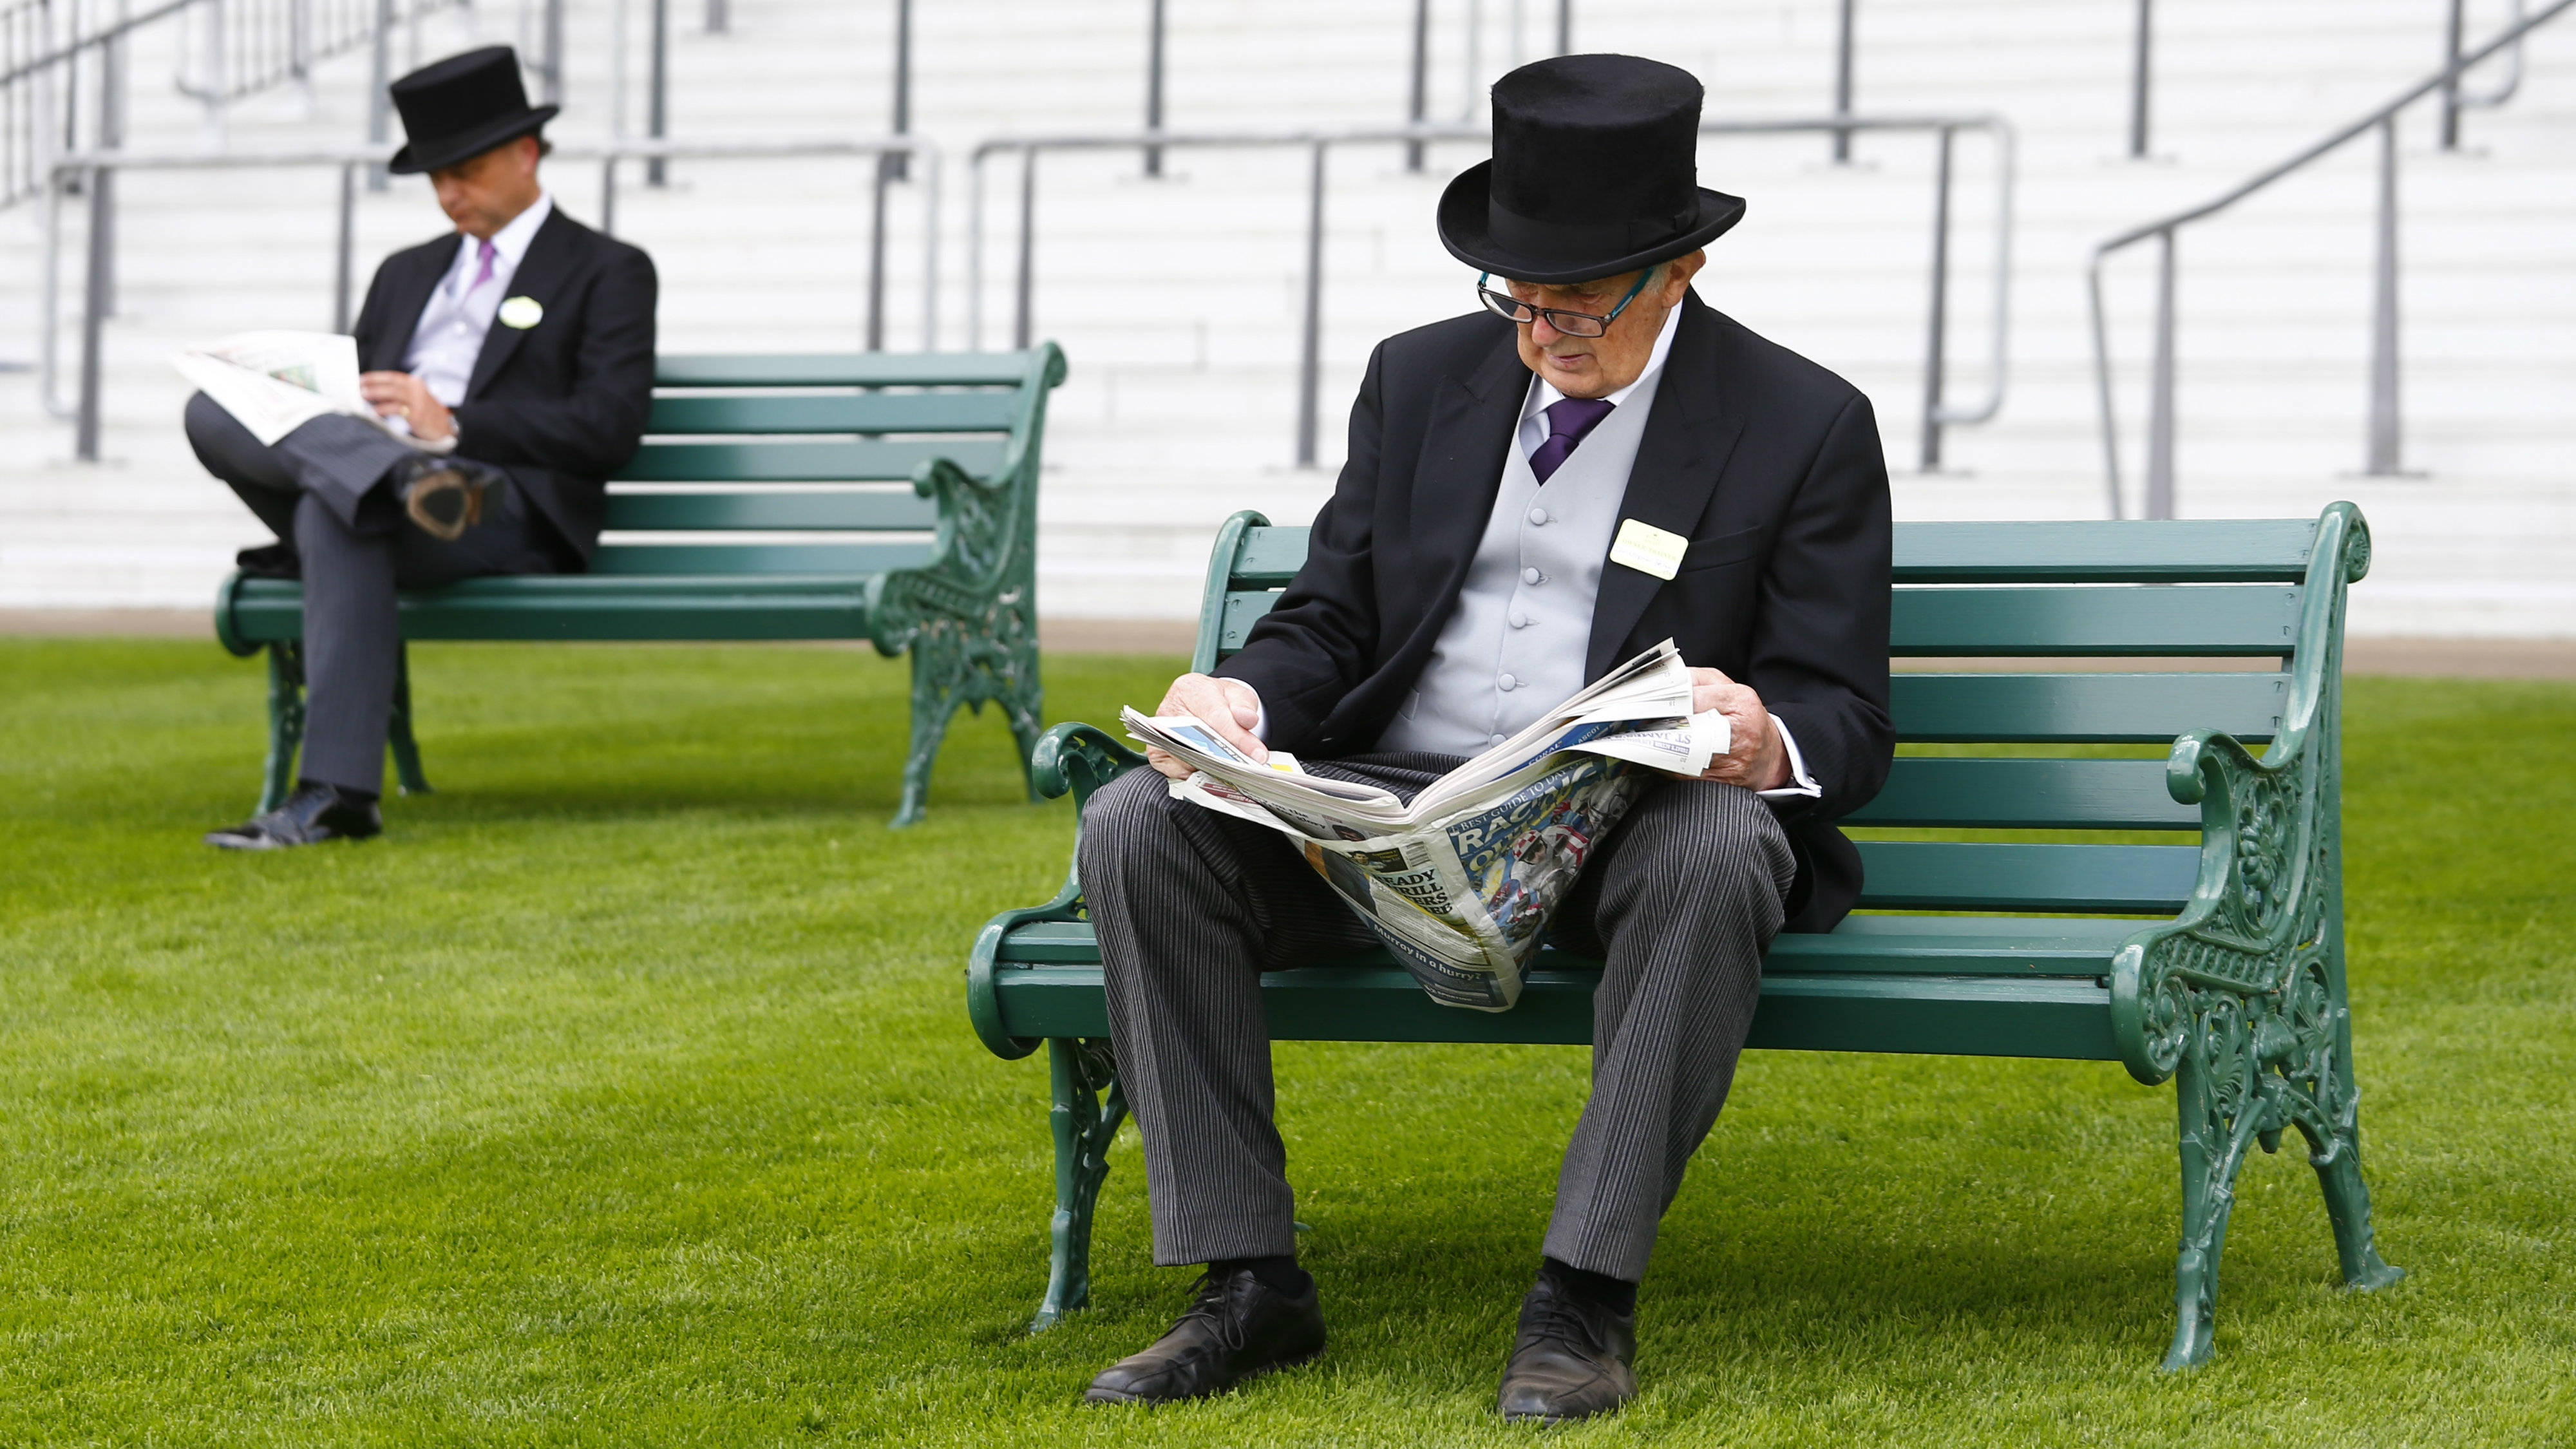 Men in traditional suits reading newspapers